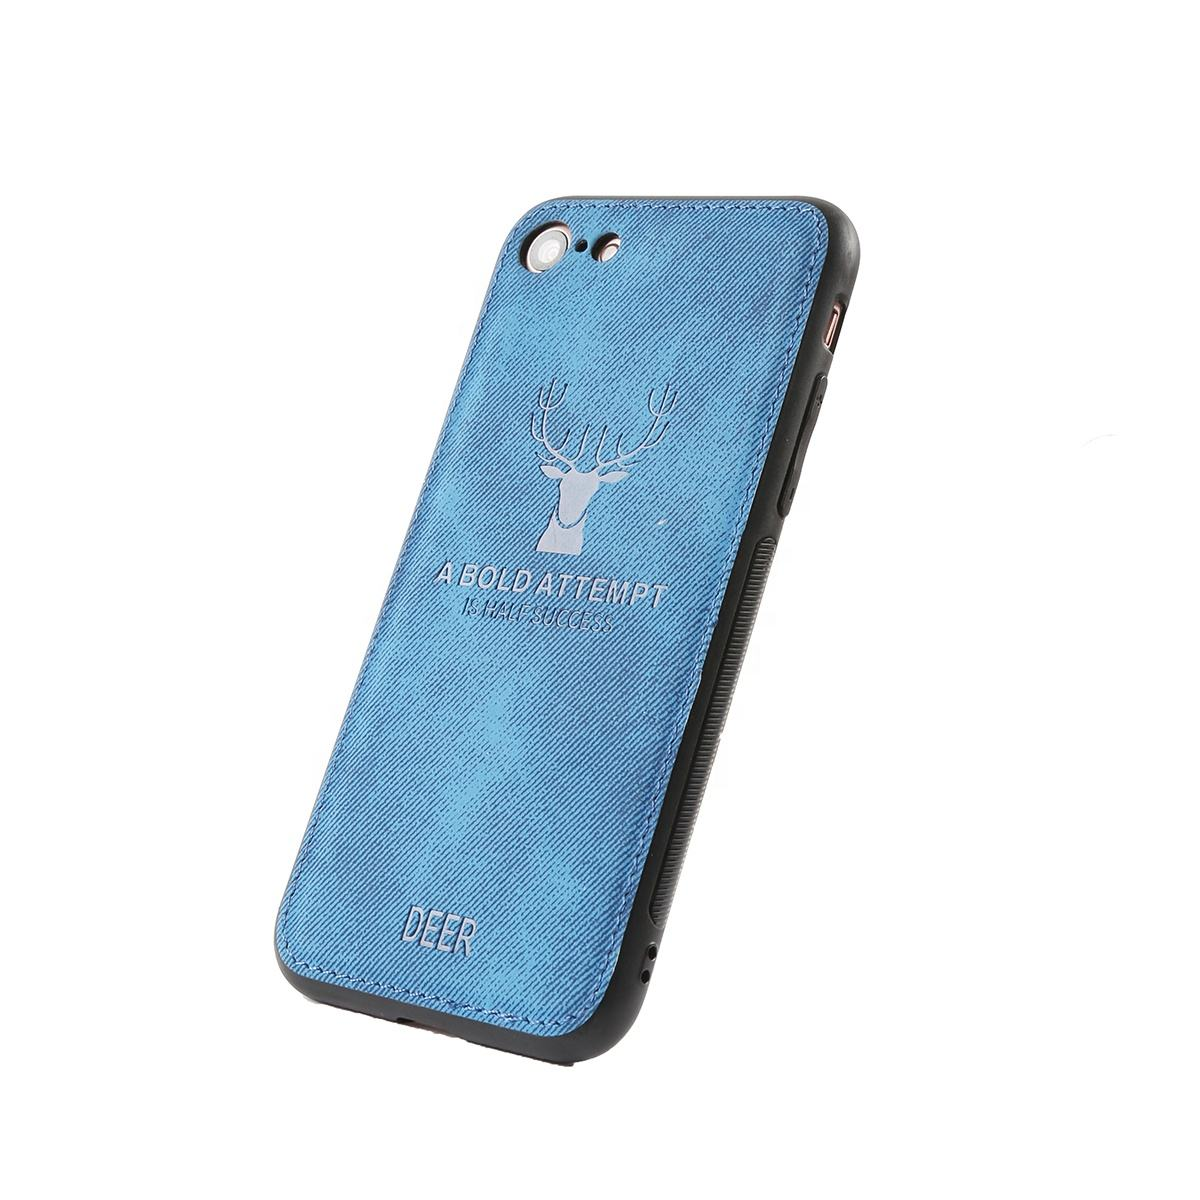 Soft TPU Edge Canvas Embossed Deer Phone Case For Vivo iQOO Cloth Texture Protective Film Cover